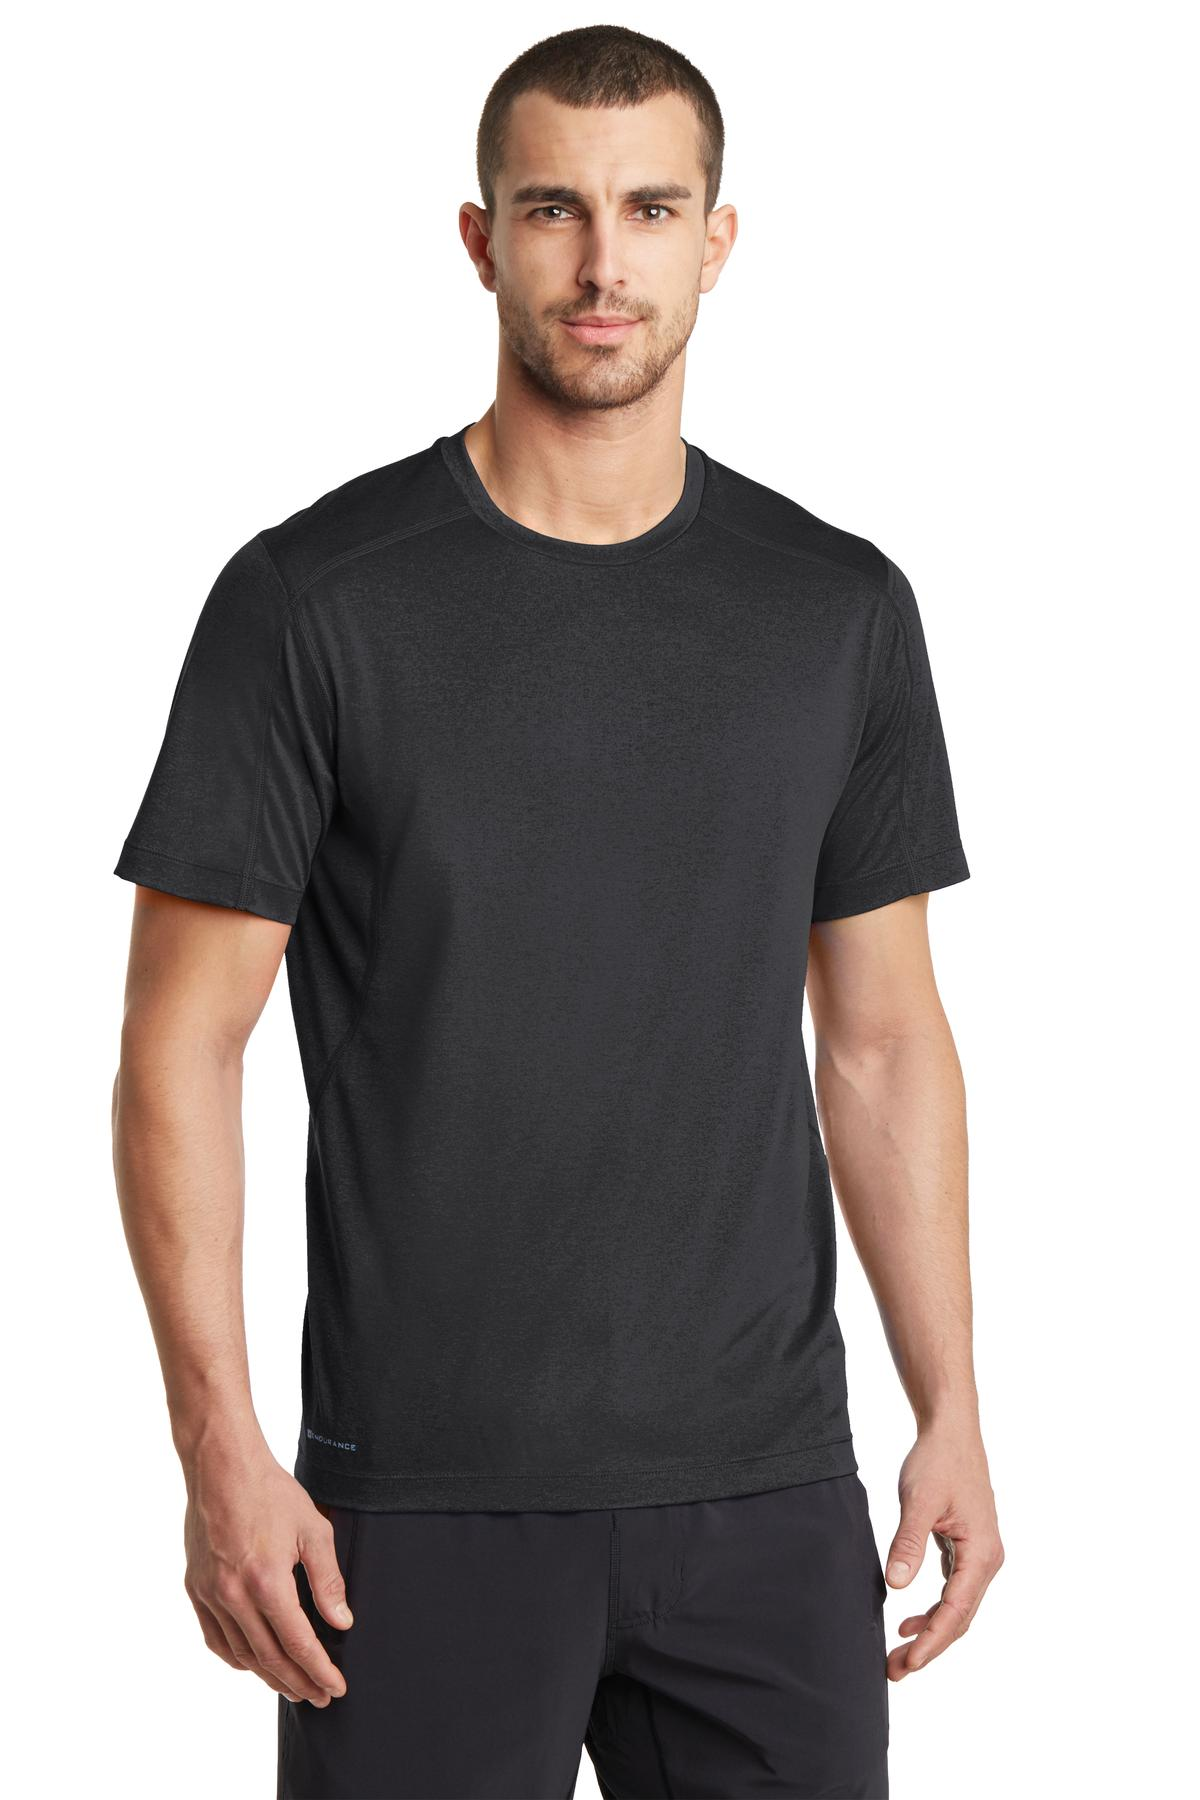 924691291-120 - OGIO® ENDURANCE Men's Pulse Crew Shirt - thumbnail